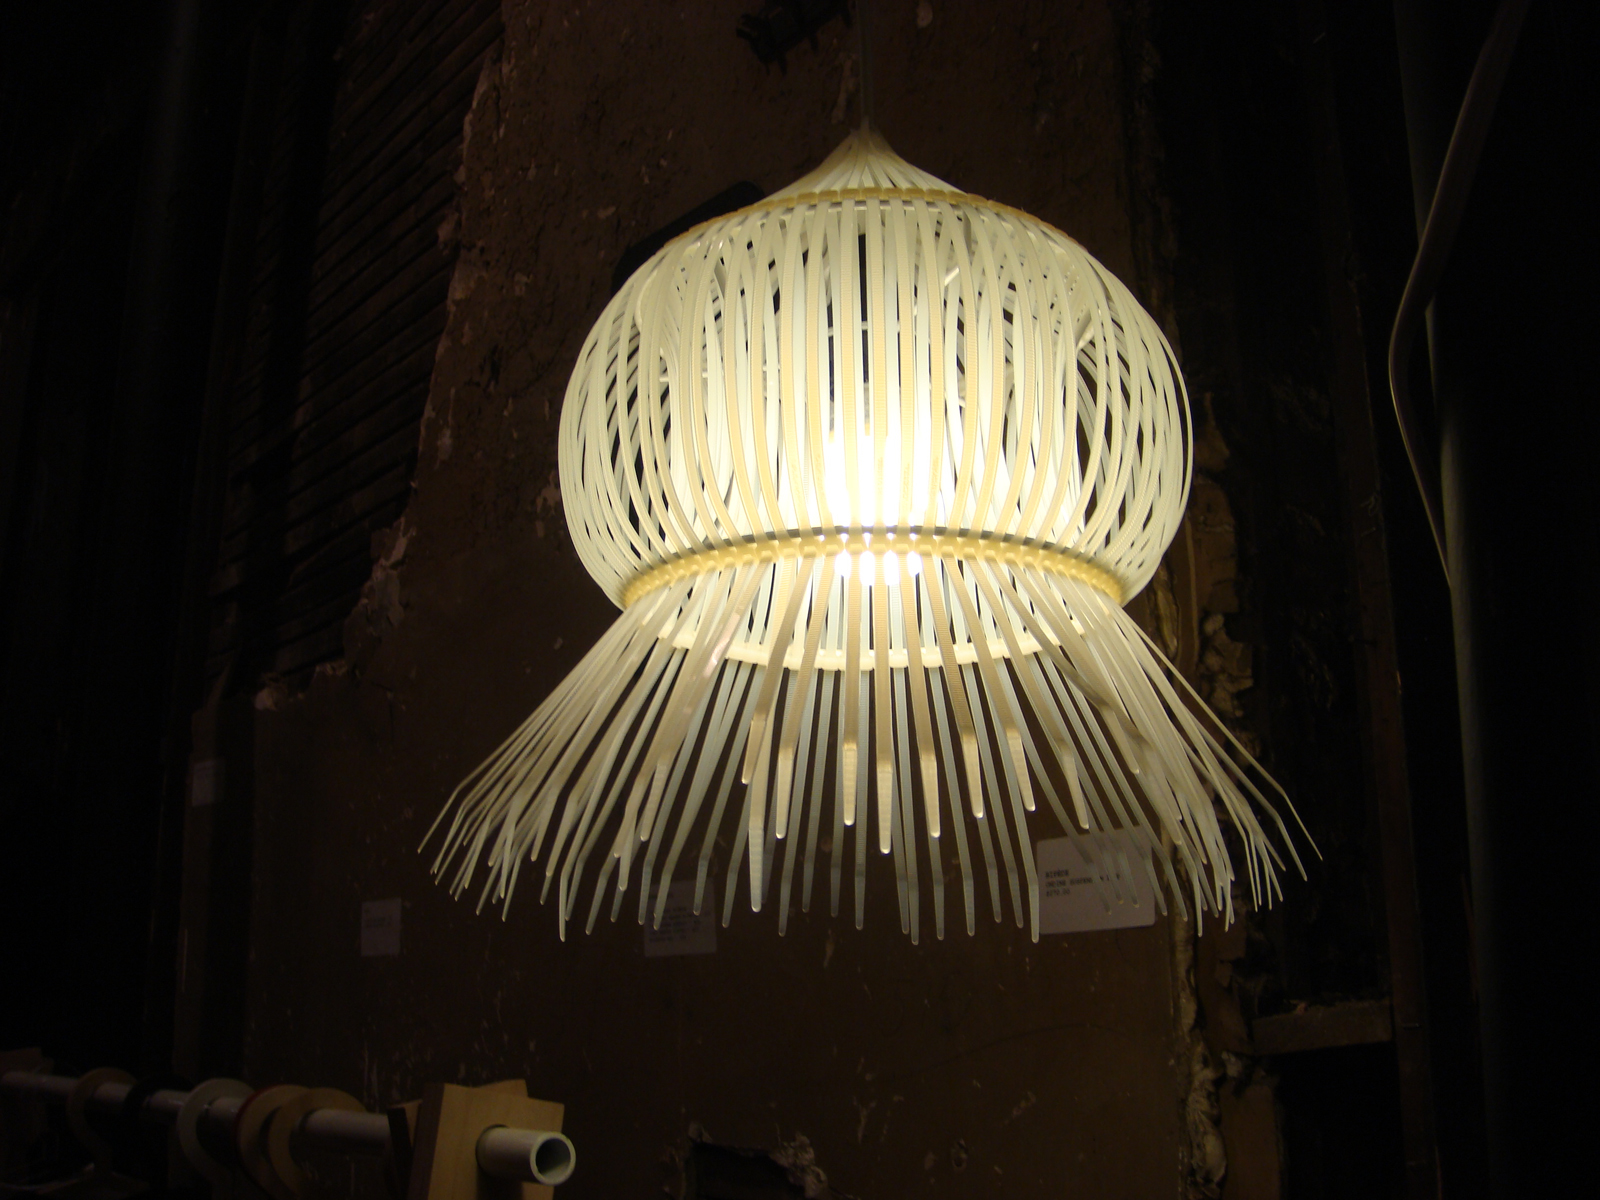 """Reflecting an innovative use of materials, <a href=""""http://www.bipede.ca.com"""">Bipede</a>'s jellyfish-esque suspension lamp is made from plastic zip ties."""